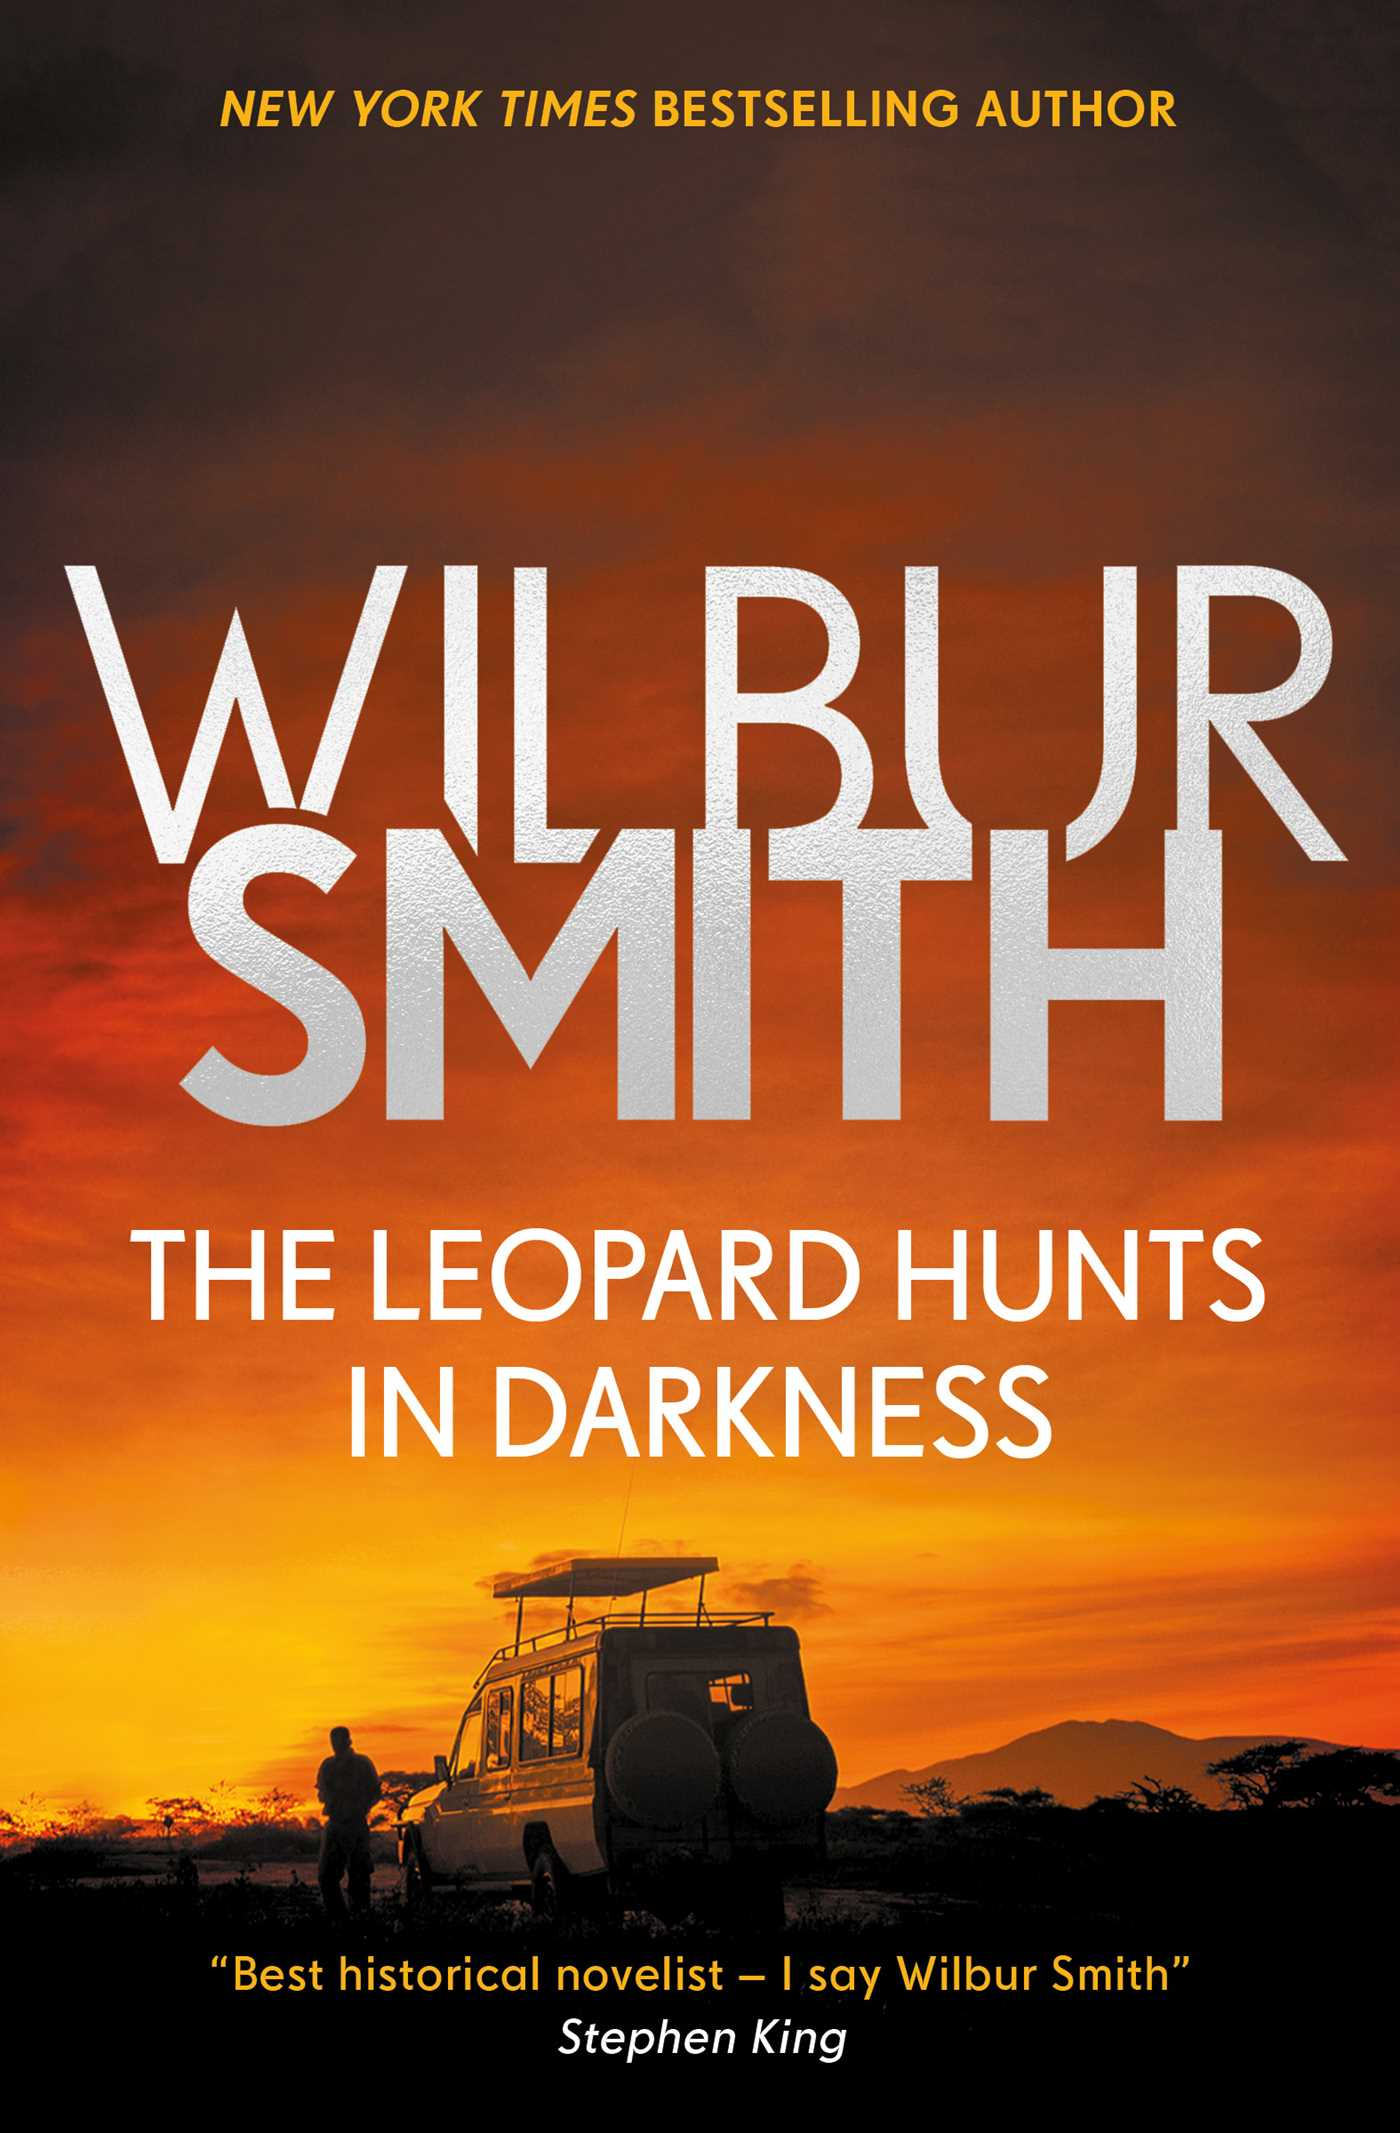 The leopard hunts in darkness 9781499860672 hr